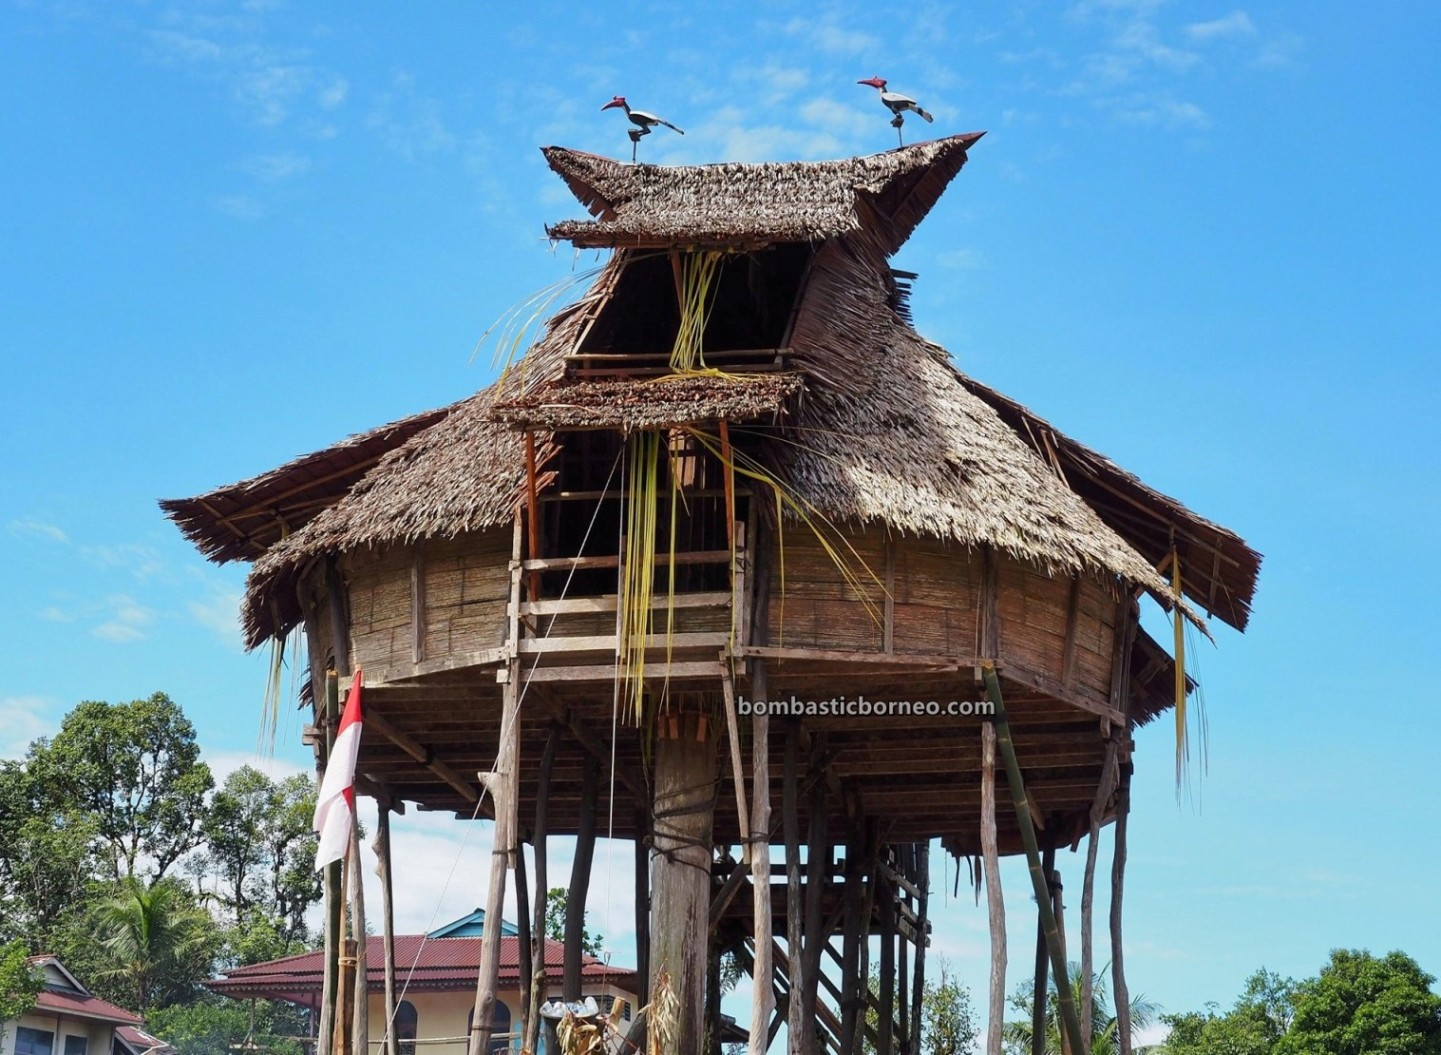 Gawai padi, Paddy Harvest Festival, authentic, traditional, Destination, budaya, Indonesia, West Kalimantan, Dayak Bidayuh, Obyek wisata, Tourism, travel guide, Borneo, 探索婆罗洲达雅部落, 西加里曼丹比达友族, 印尼原住民丰收节,